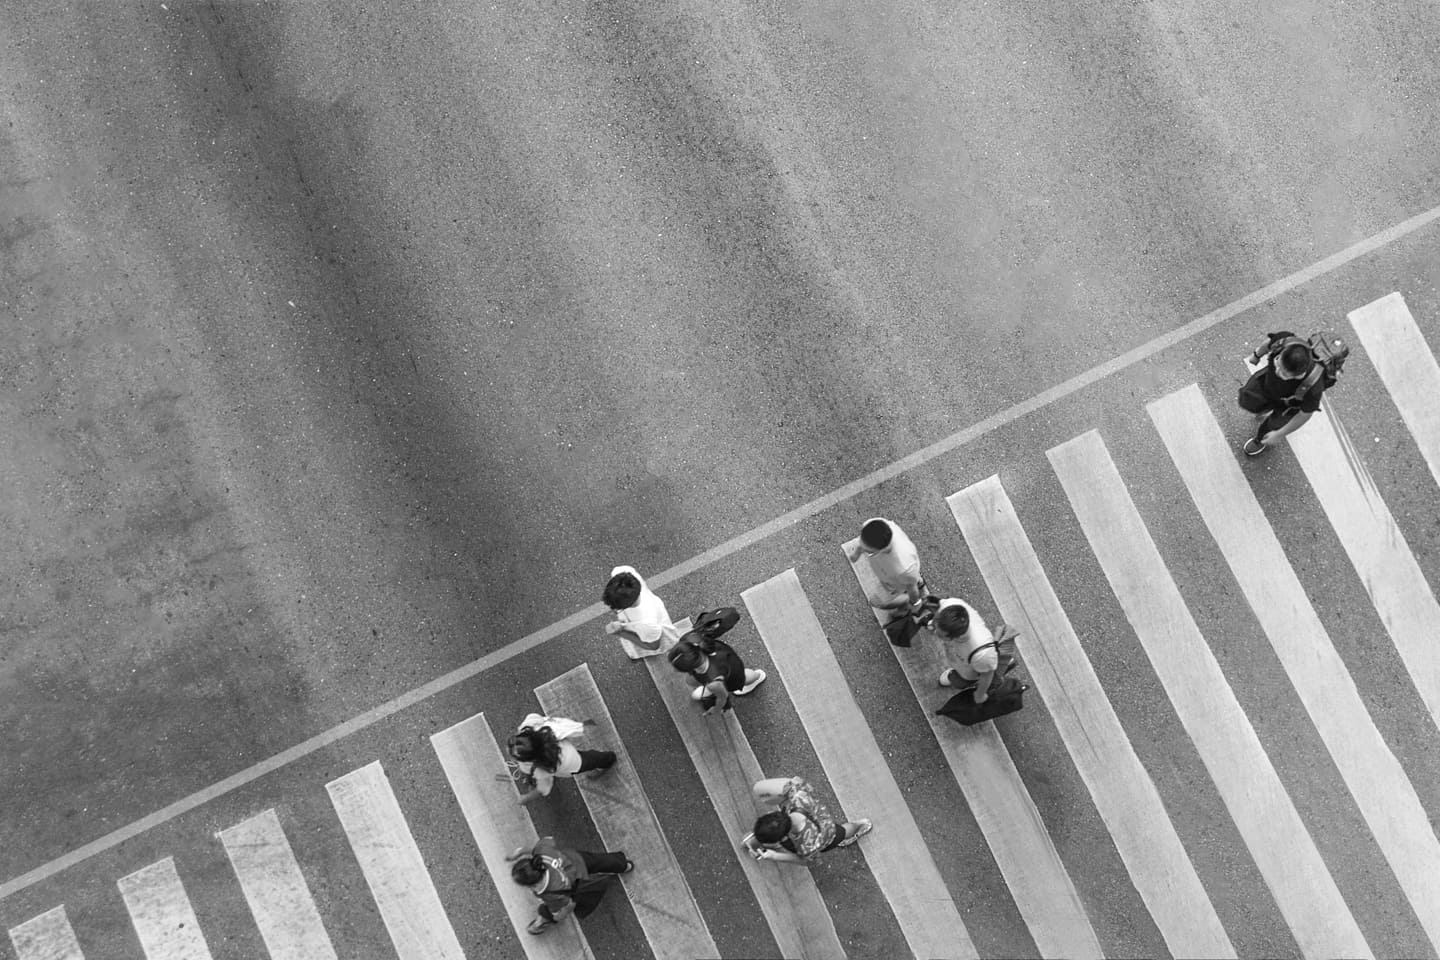 A city crowd moves along a pedestrian crosswalk on a busy road (aerial, top view photo)